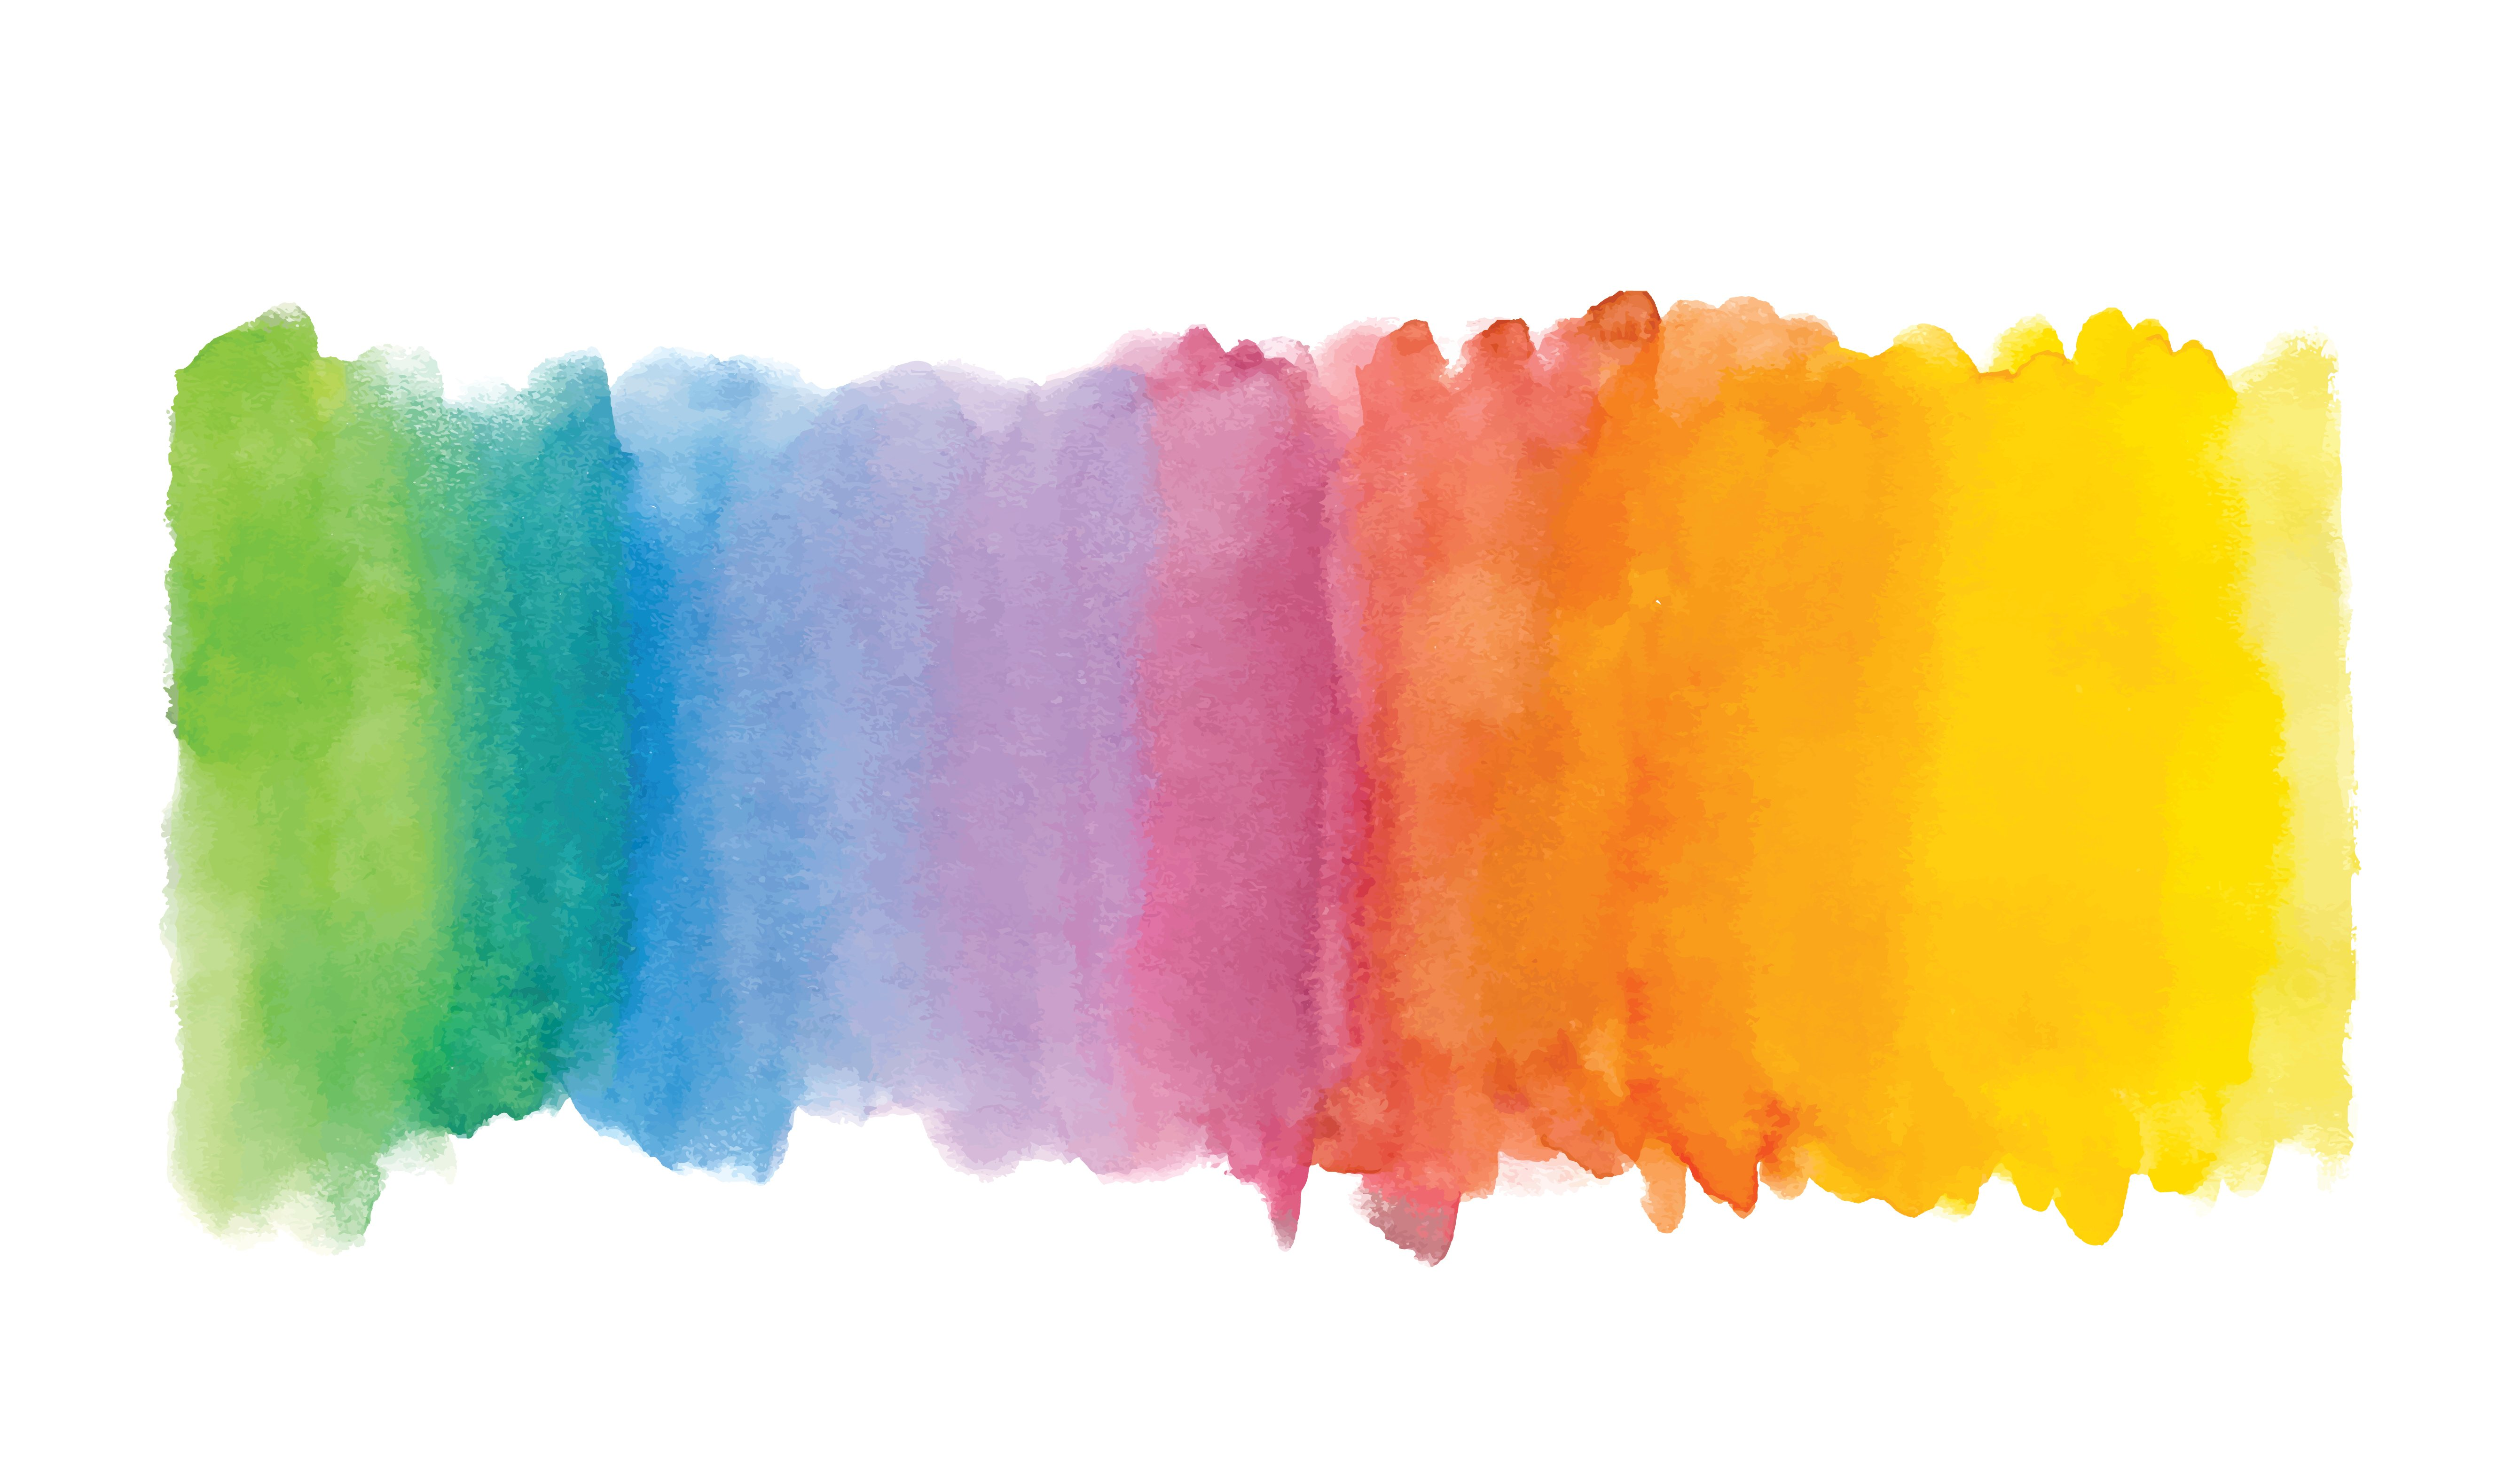 Rainbow abstract watercolor background Hand drawn watercolor 5361x3150